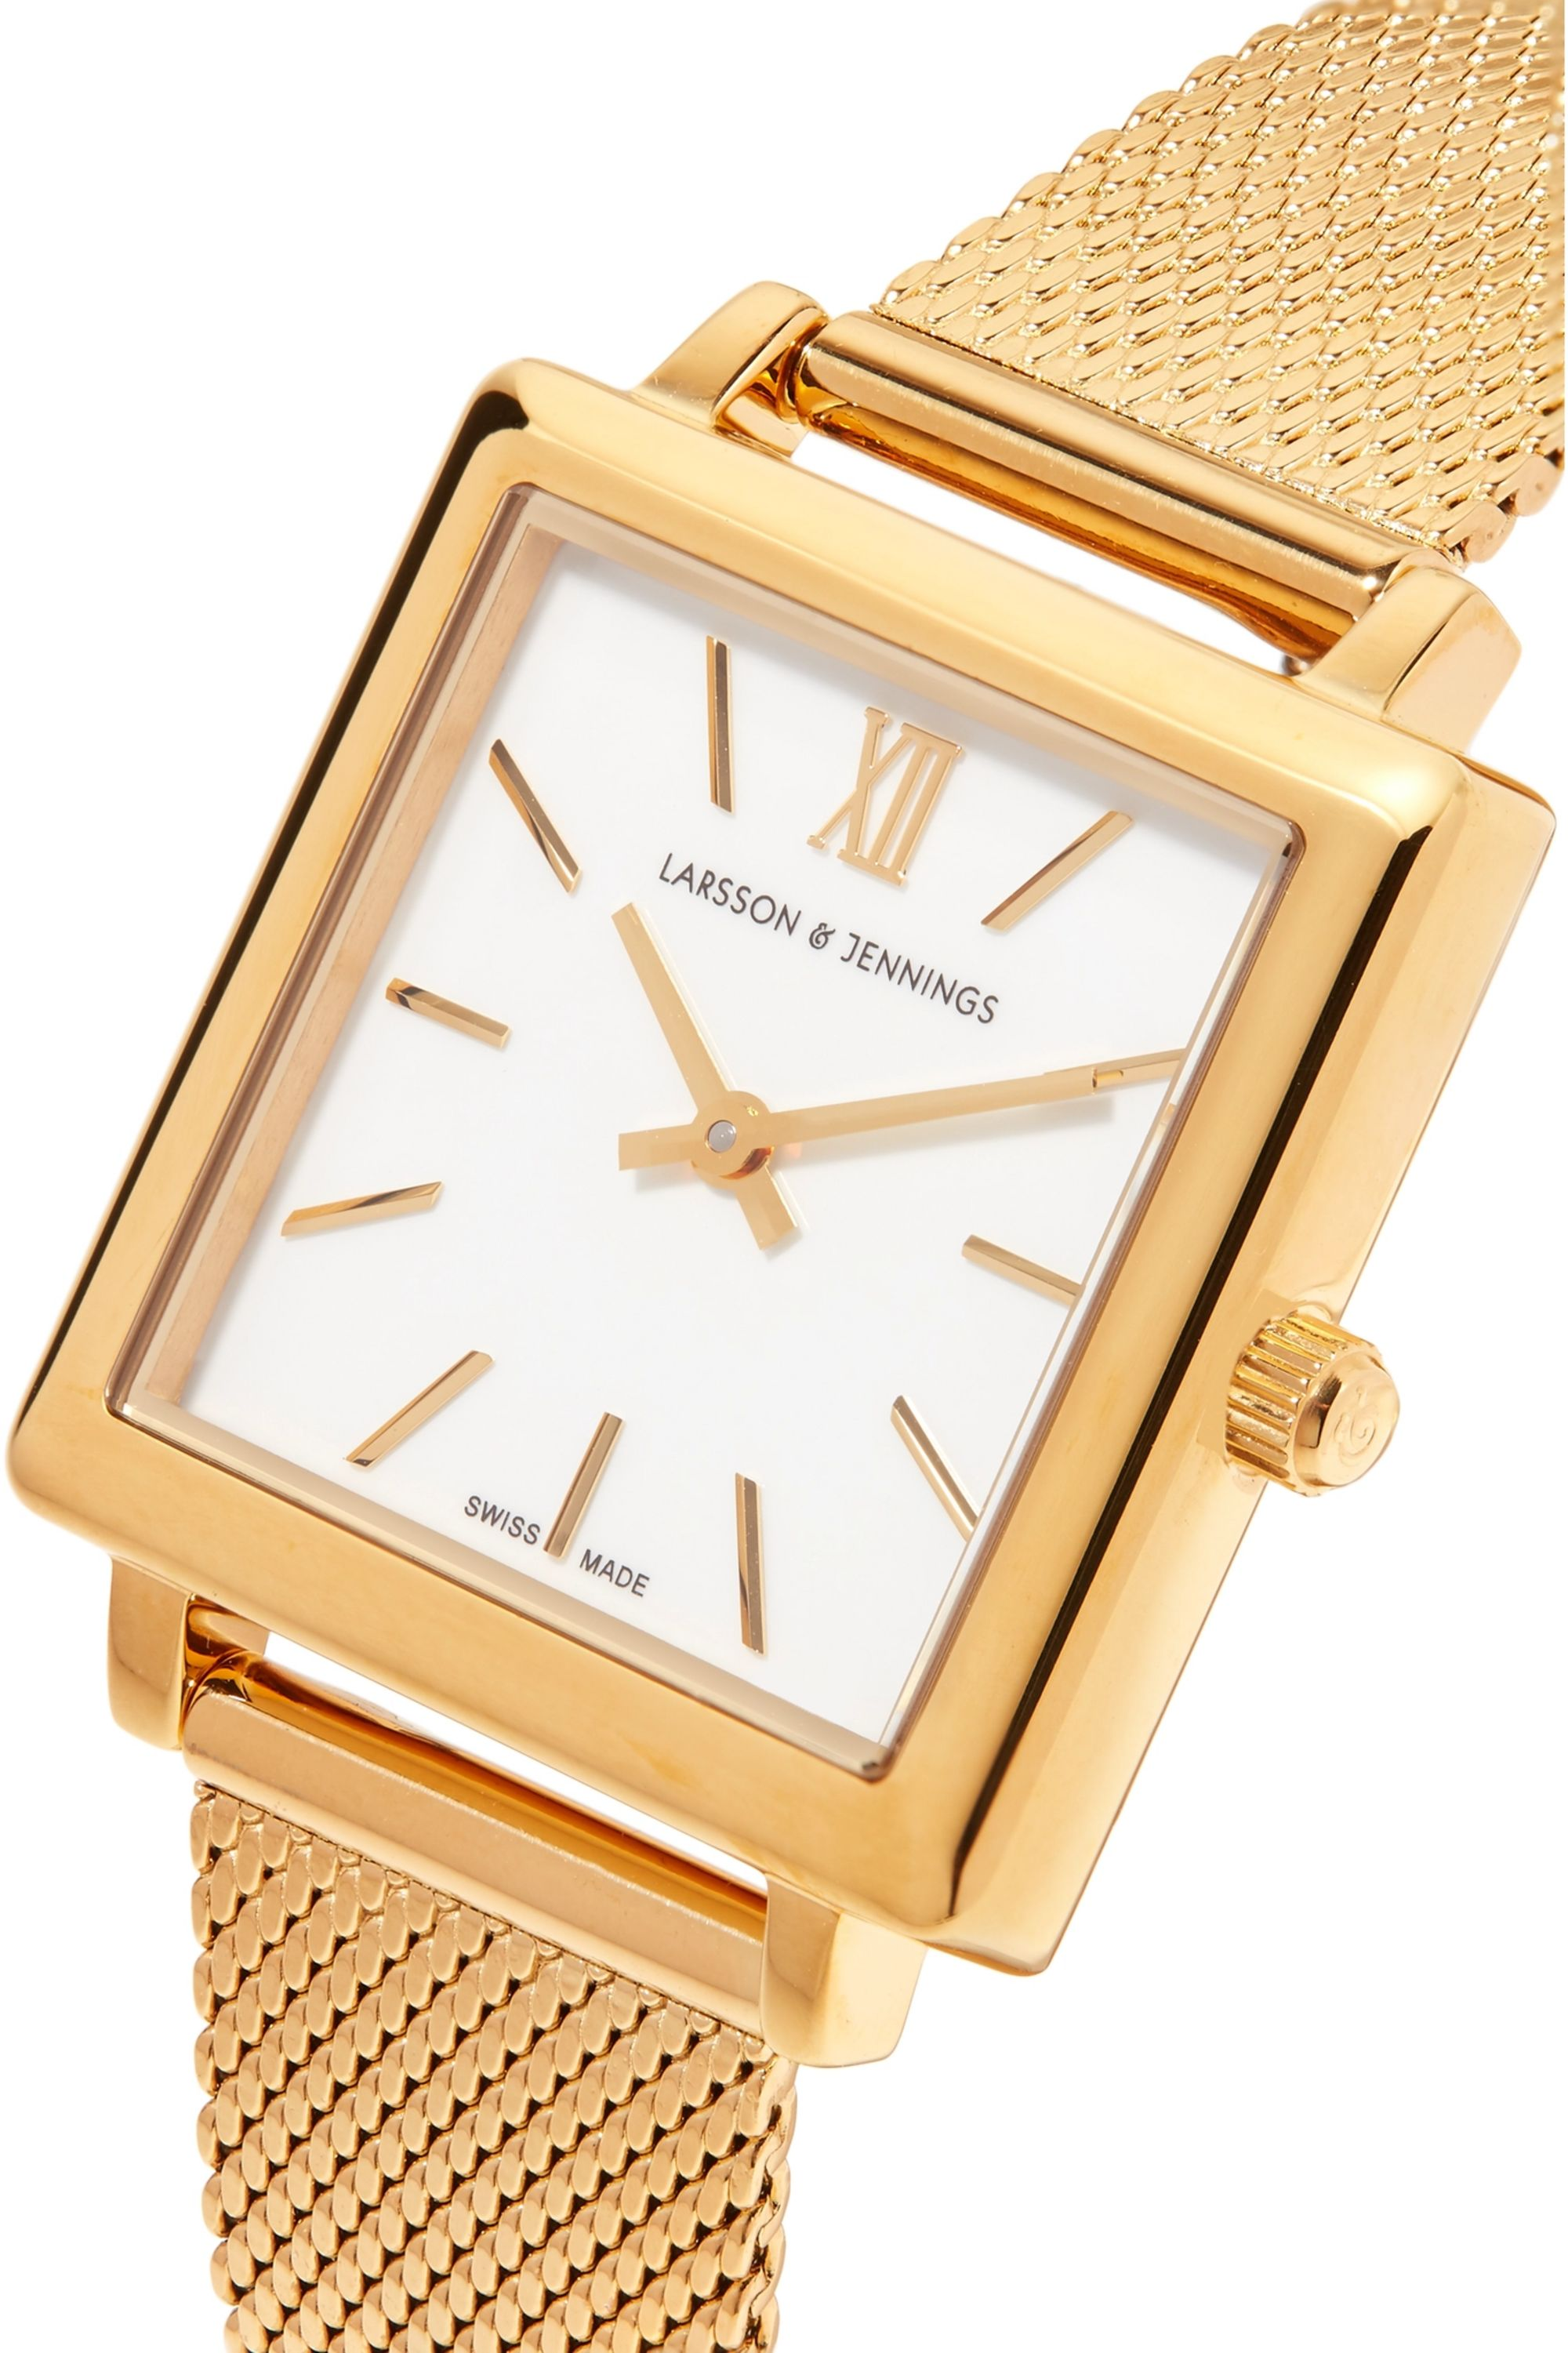 Larsson & Jennings Norse gold-plated watch